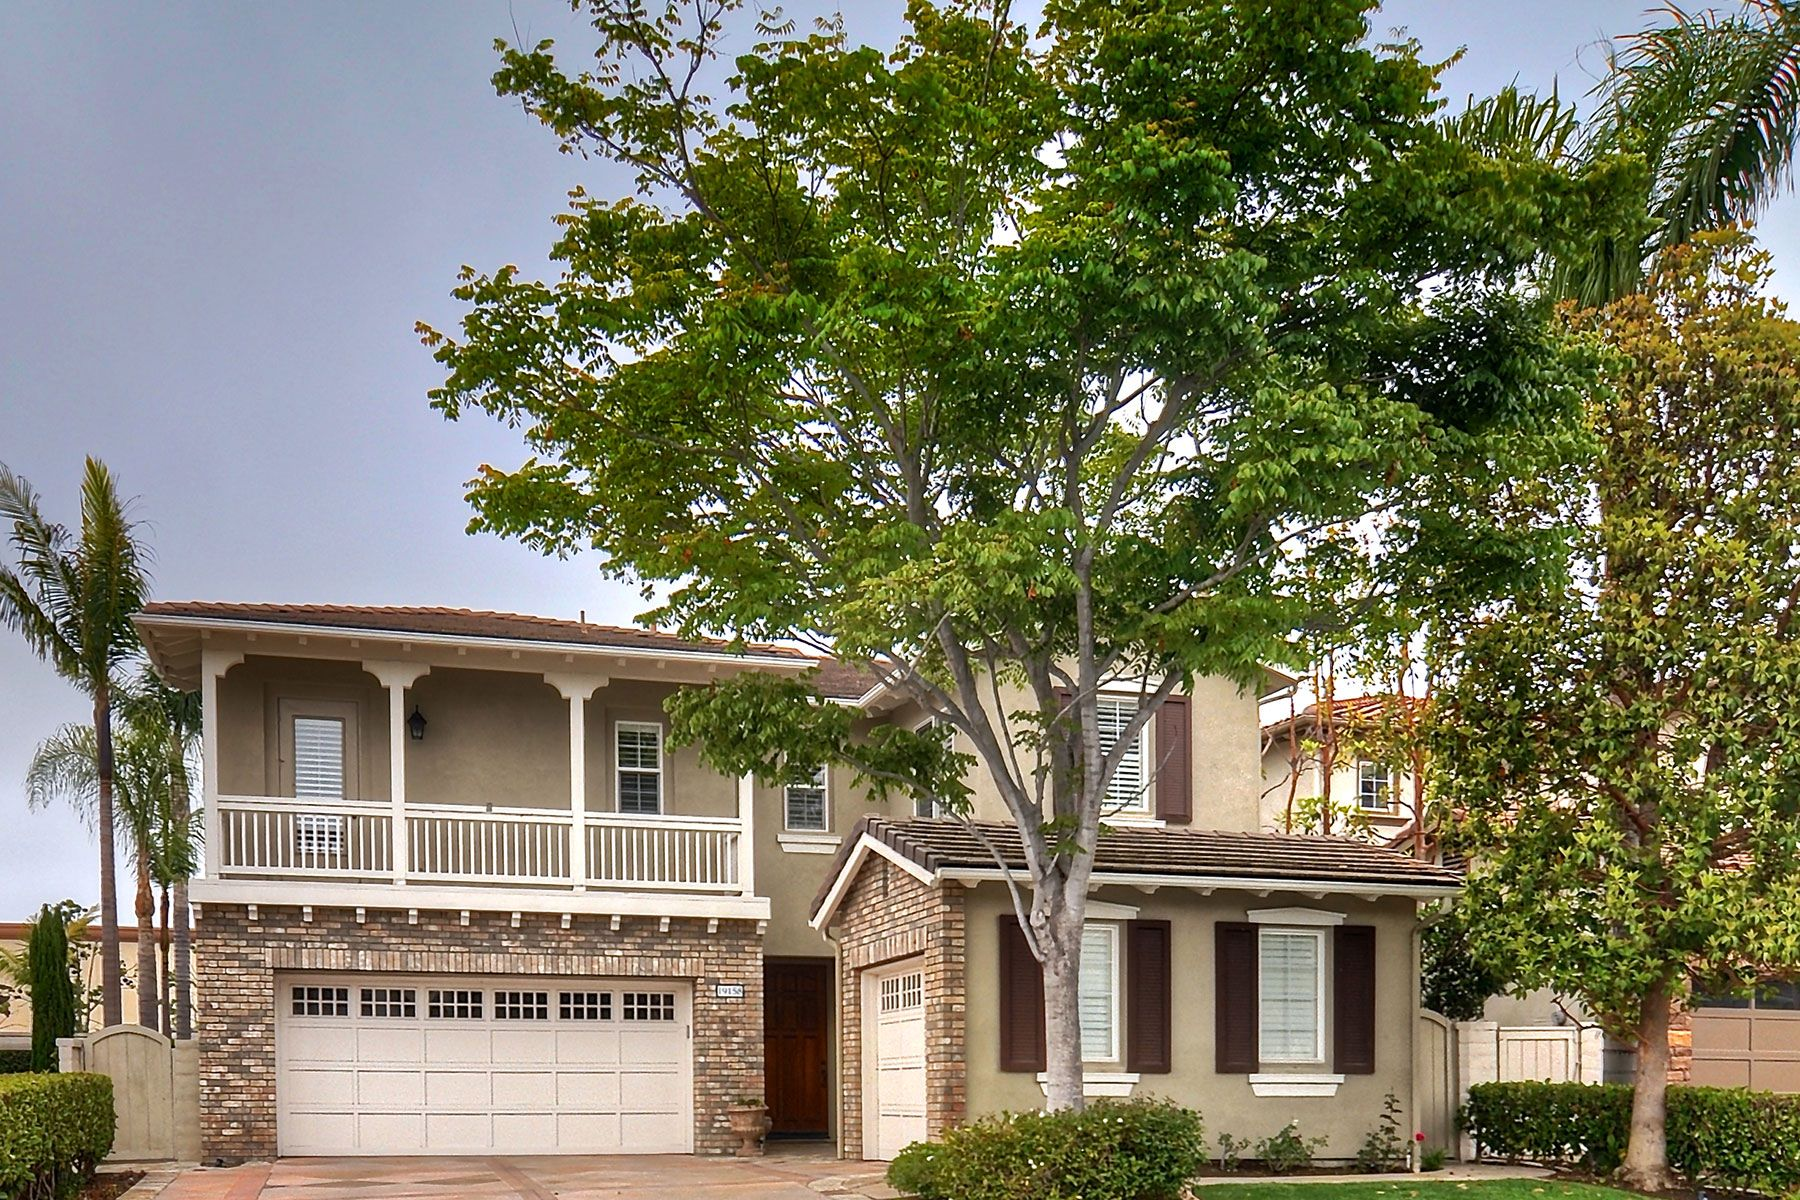 Single Family Home for Sale at 19158 Chandon Huntington Beach, California, 92648 United States